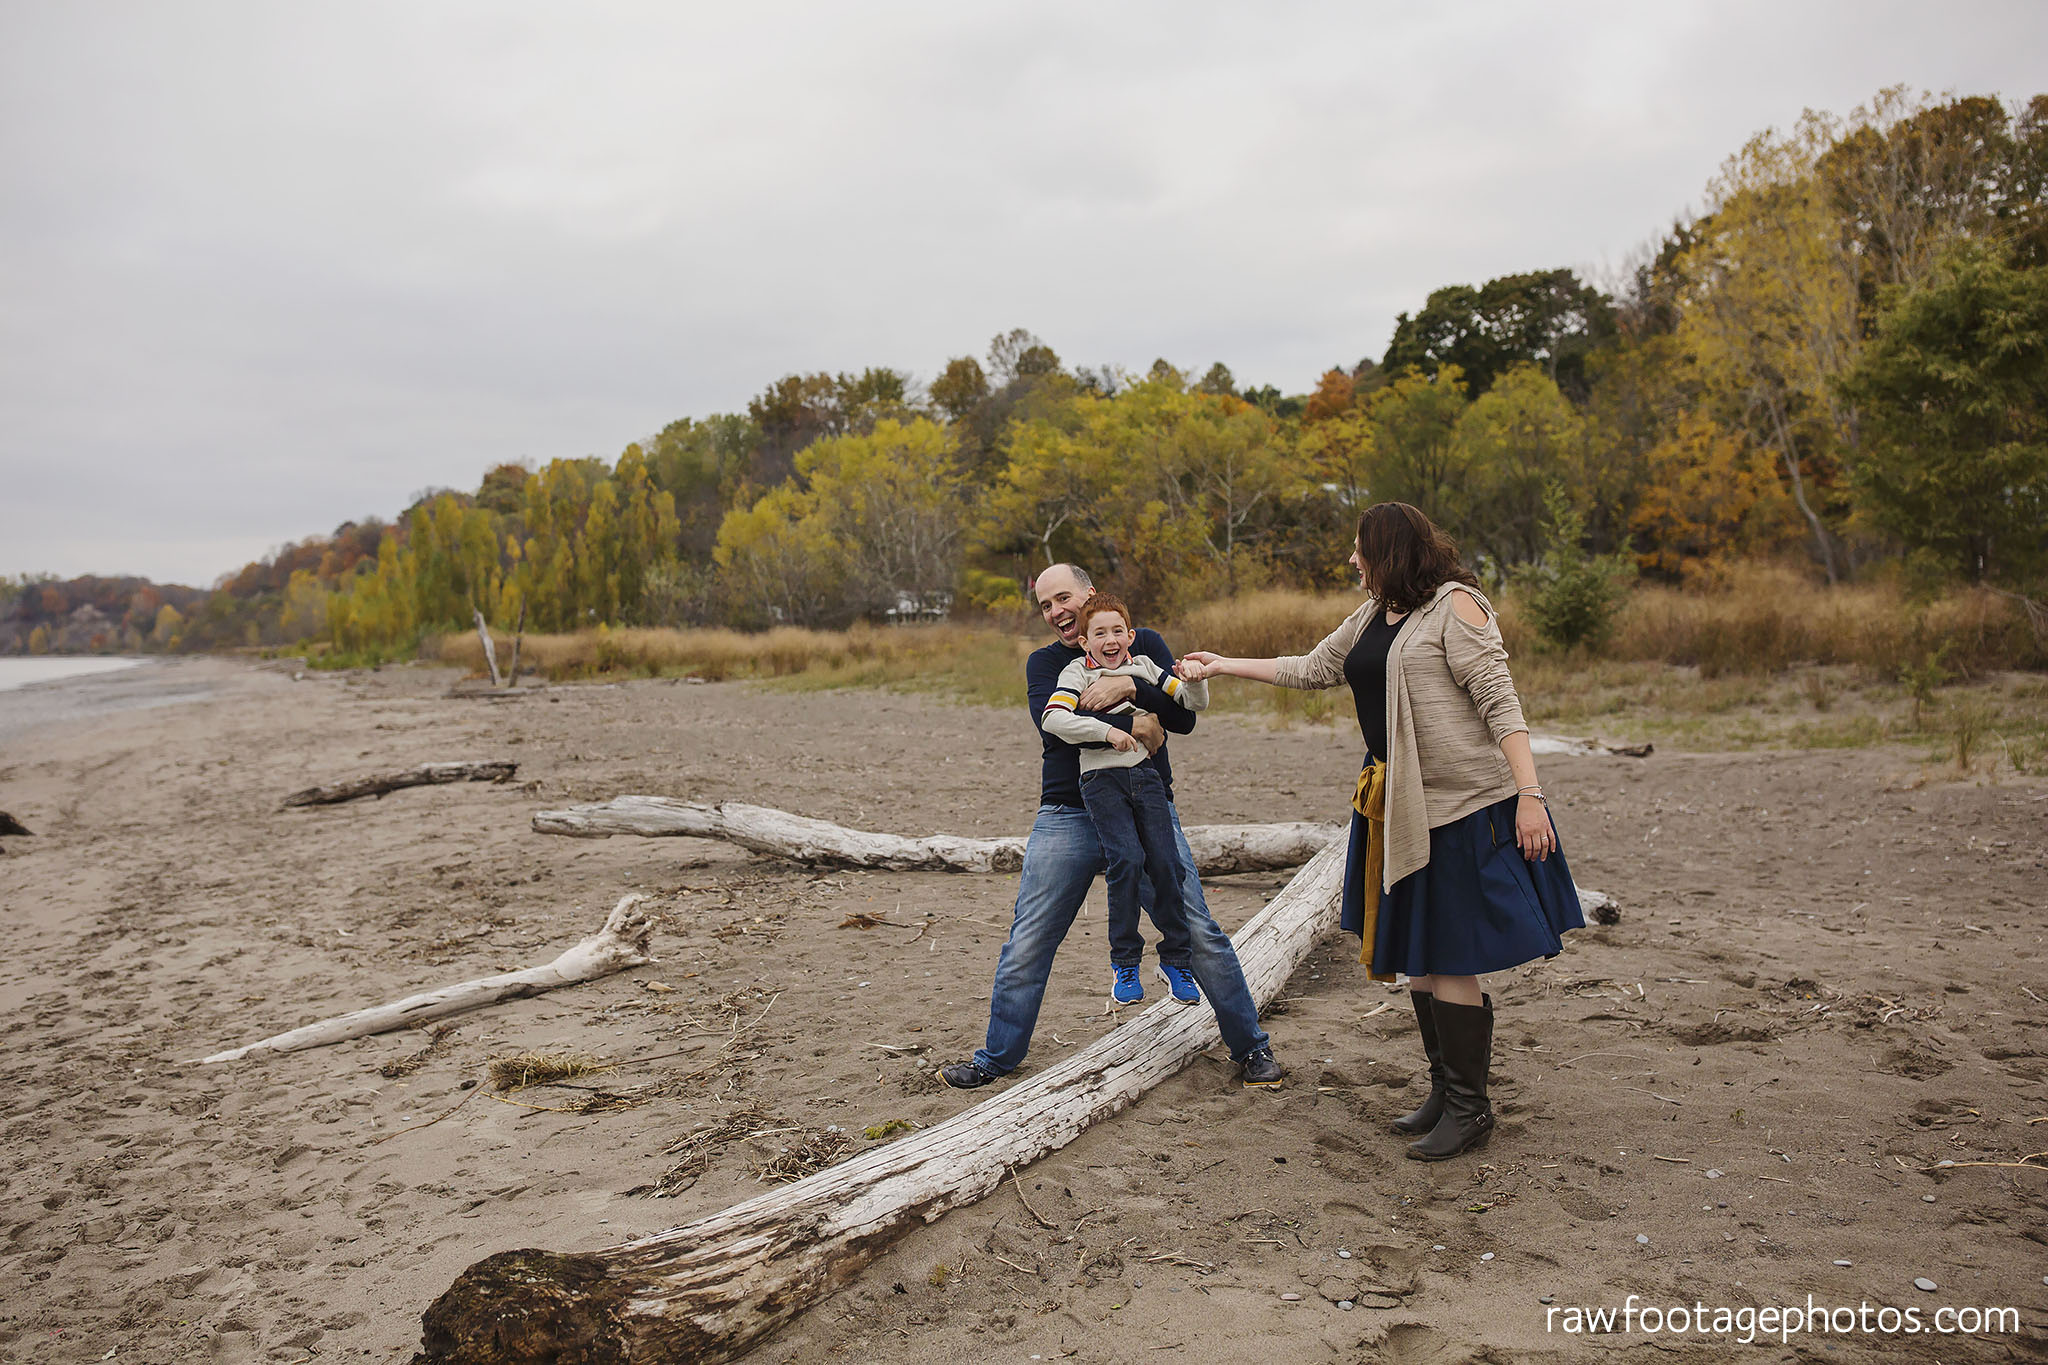 london_ontario_family_photographer-port_stanley_photography-raw_footage_photography-family_photos-beach_photos-fall_family_photos-lifestyle_family_photography-candid_photographer018.jpg